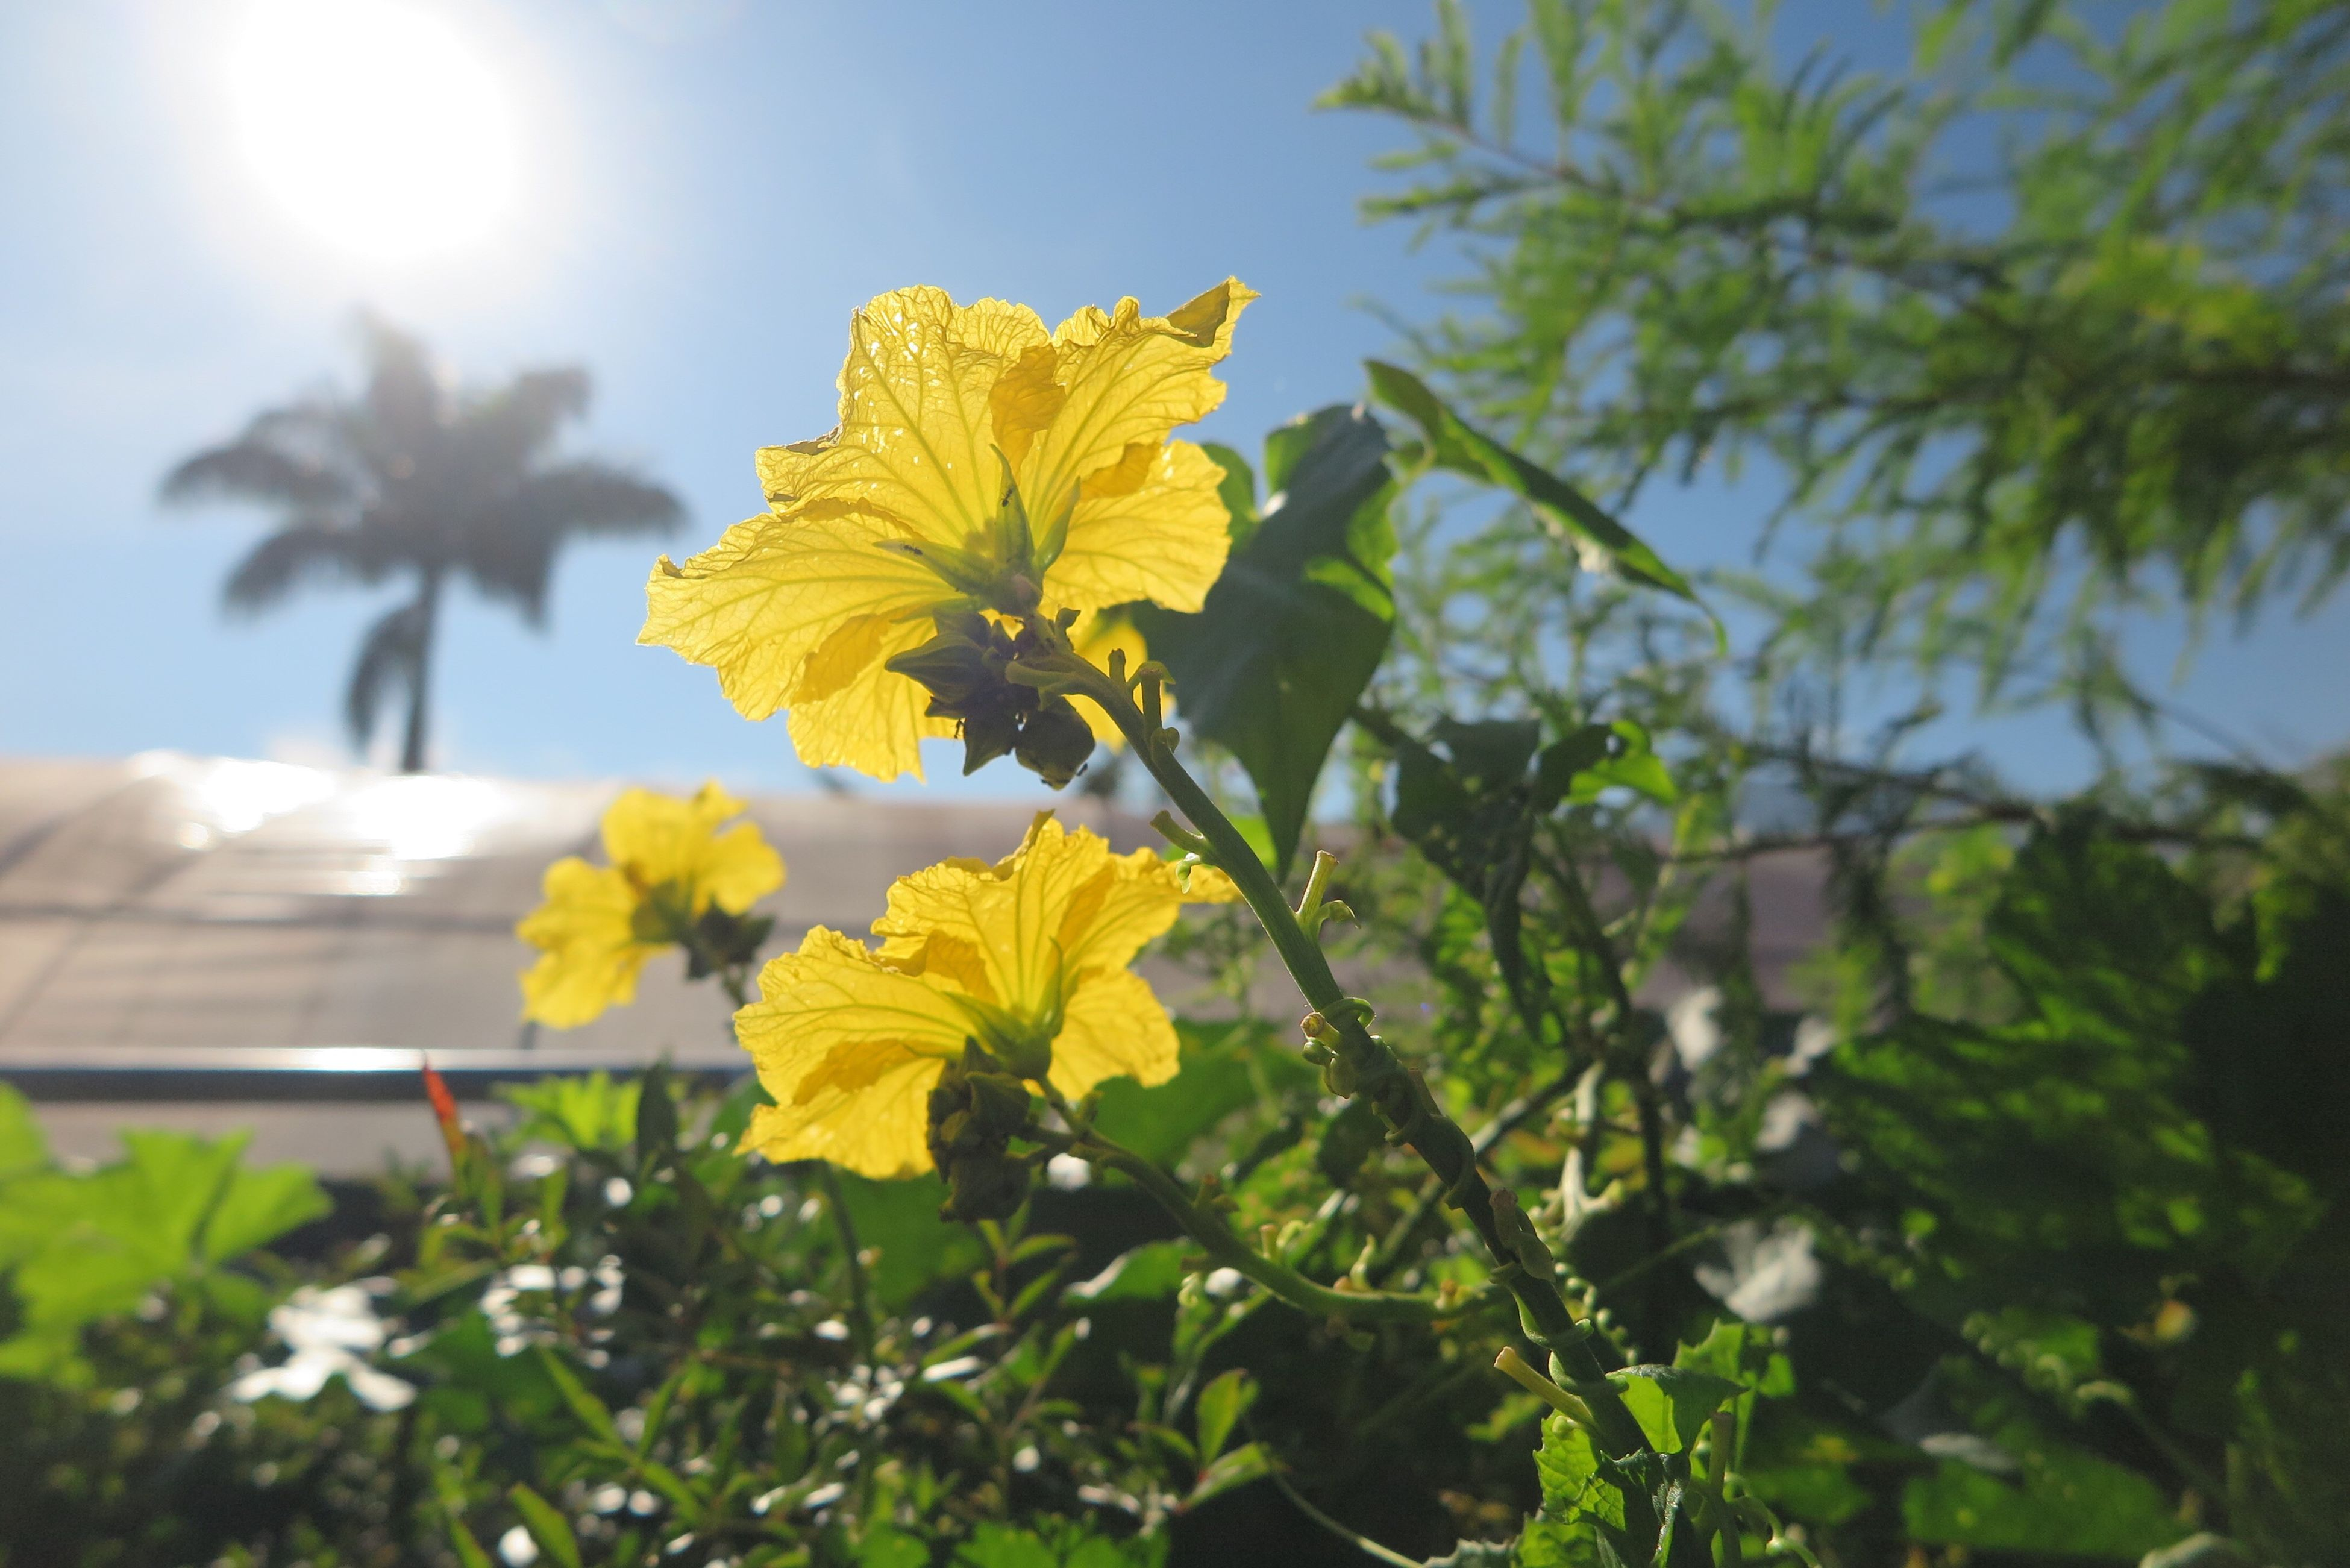 flower, growth, yellow, fragility, freshness, petal, beauty in nature, focus on foreground, leaf, nature, close-up, sunlight, flower head, plant, blooming, in bloom, sunbeam, stem, day, sun, outdoors, blossom, no people, botany, selective focus, sky, green color, sunny, growing, tranquility